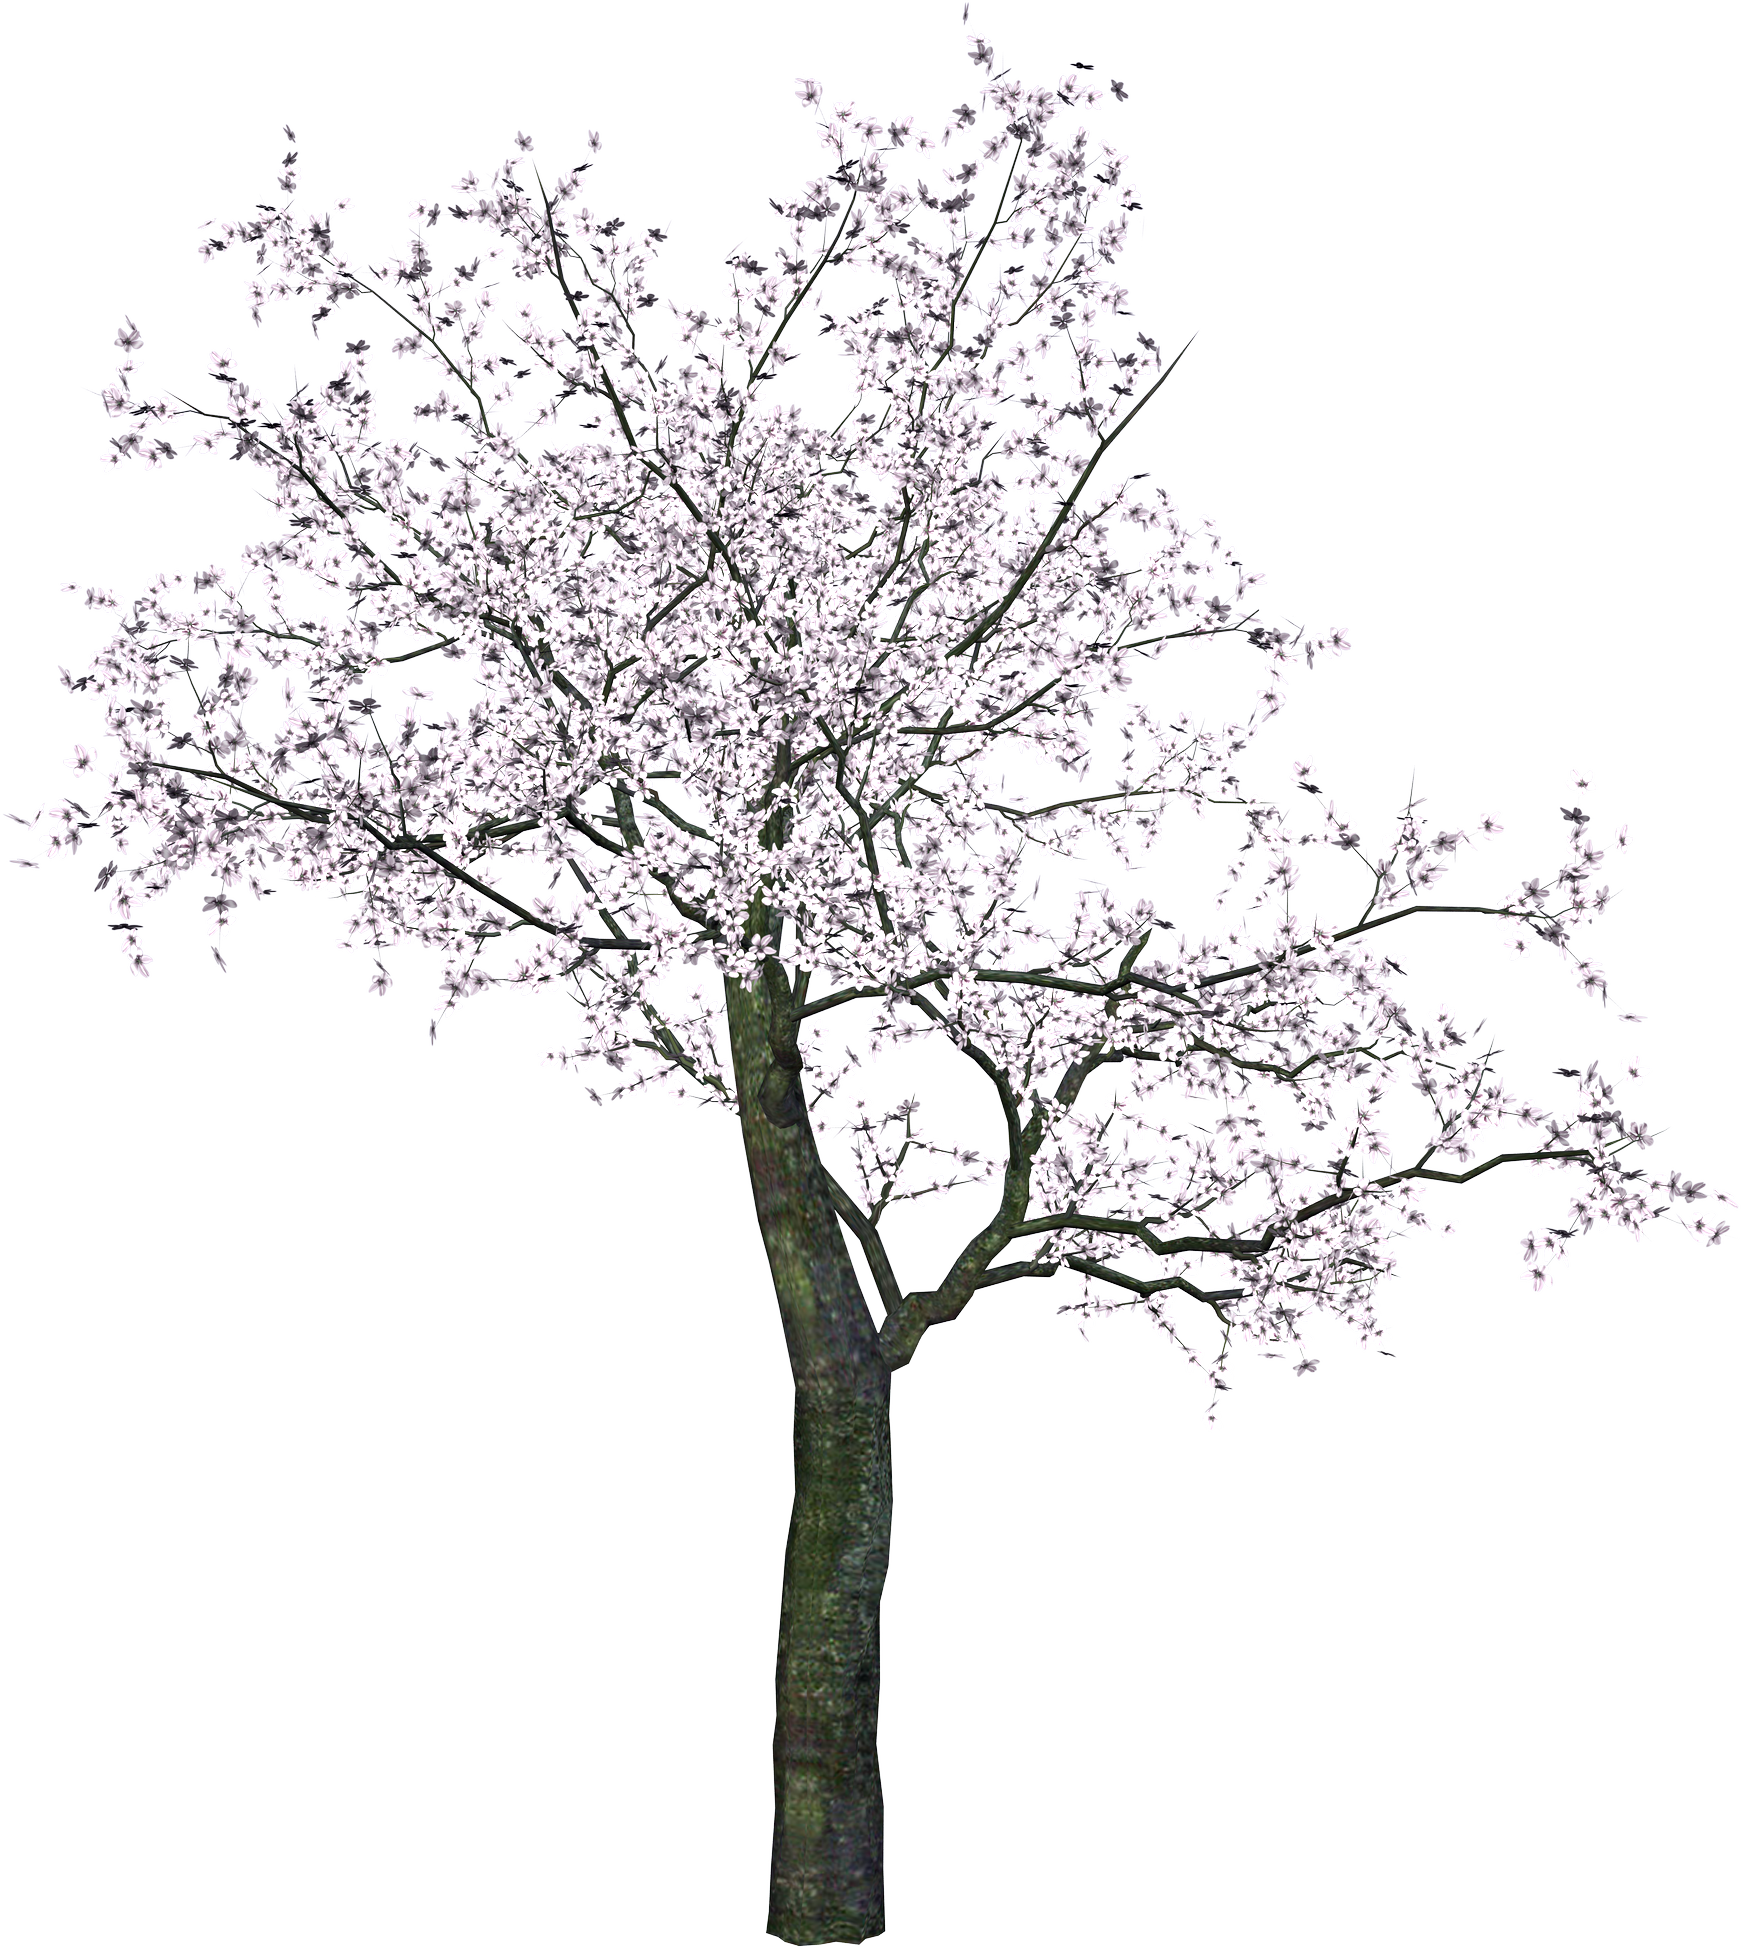 George washington cherry tree clipart picture library stock Download Cherry Tree Transparent Image HQ PNG Image | FreePNGImg picture library stock